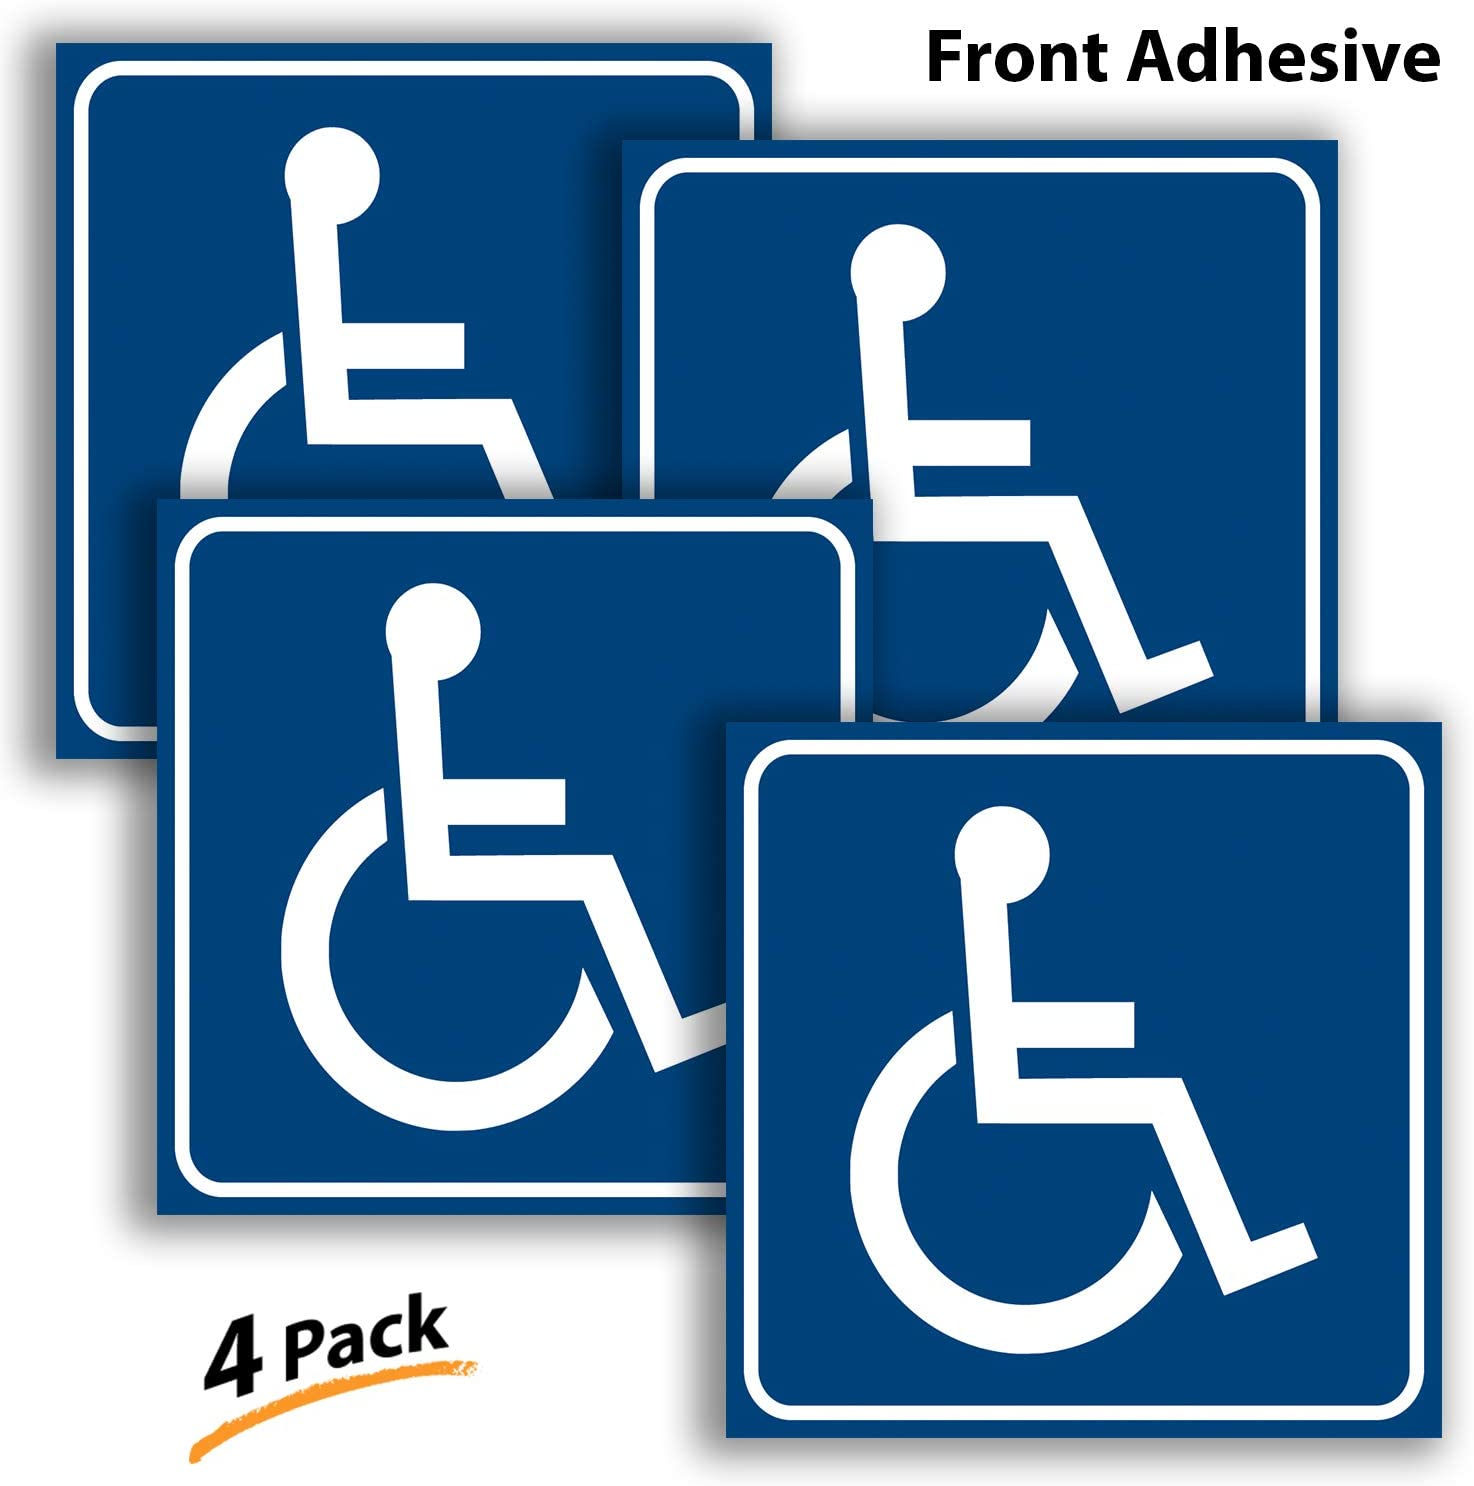 Handicap Signs Stickers Decal Symbol - 4 Pack 6x6 inch - ADA Compliant - Premium Front Adhesive Vinyl for Applying Inside The Window or Glass Door, Disabled Wheelchair Sign, Disability Sticker.